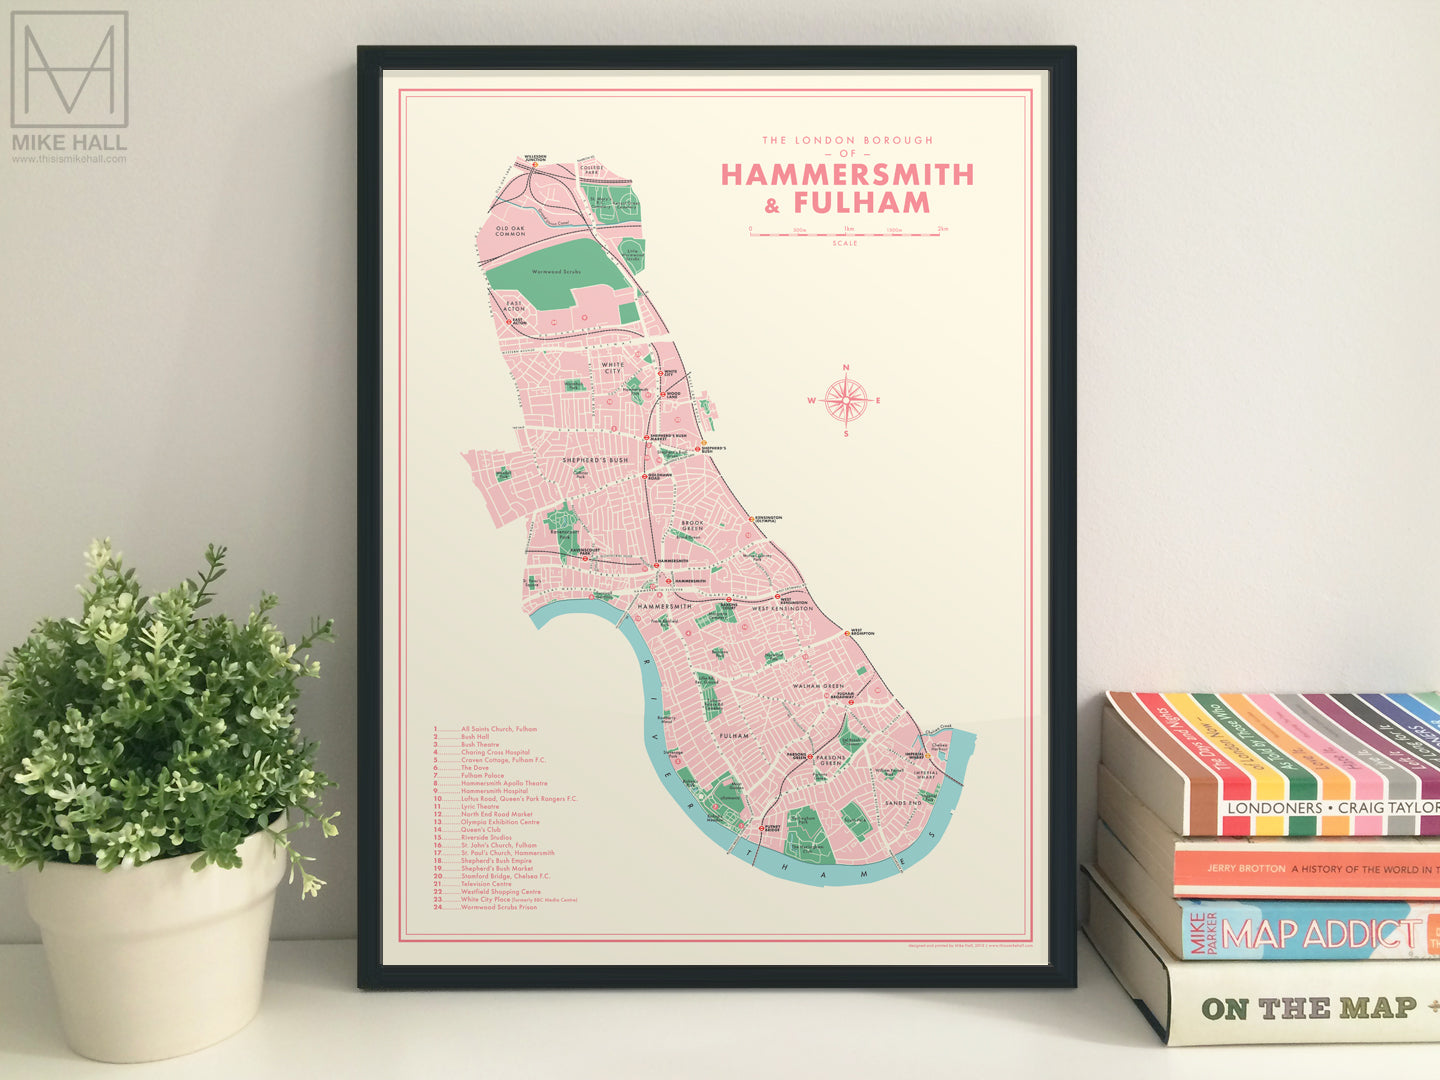 Hammersmith & Fulham (London borough) retro map giclee print